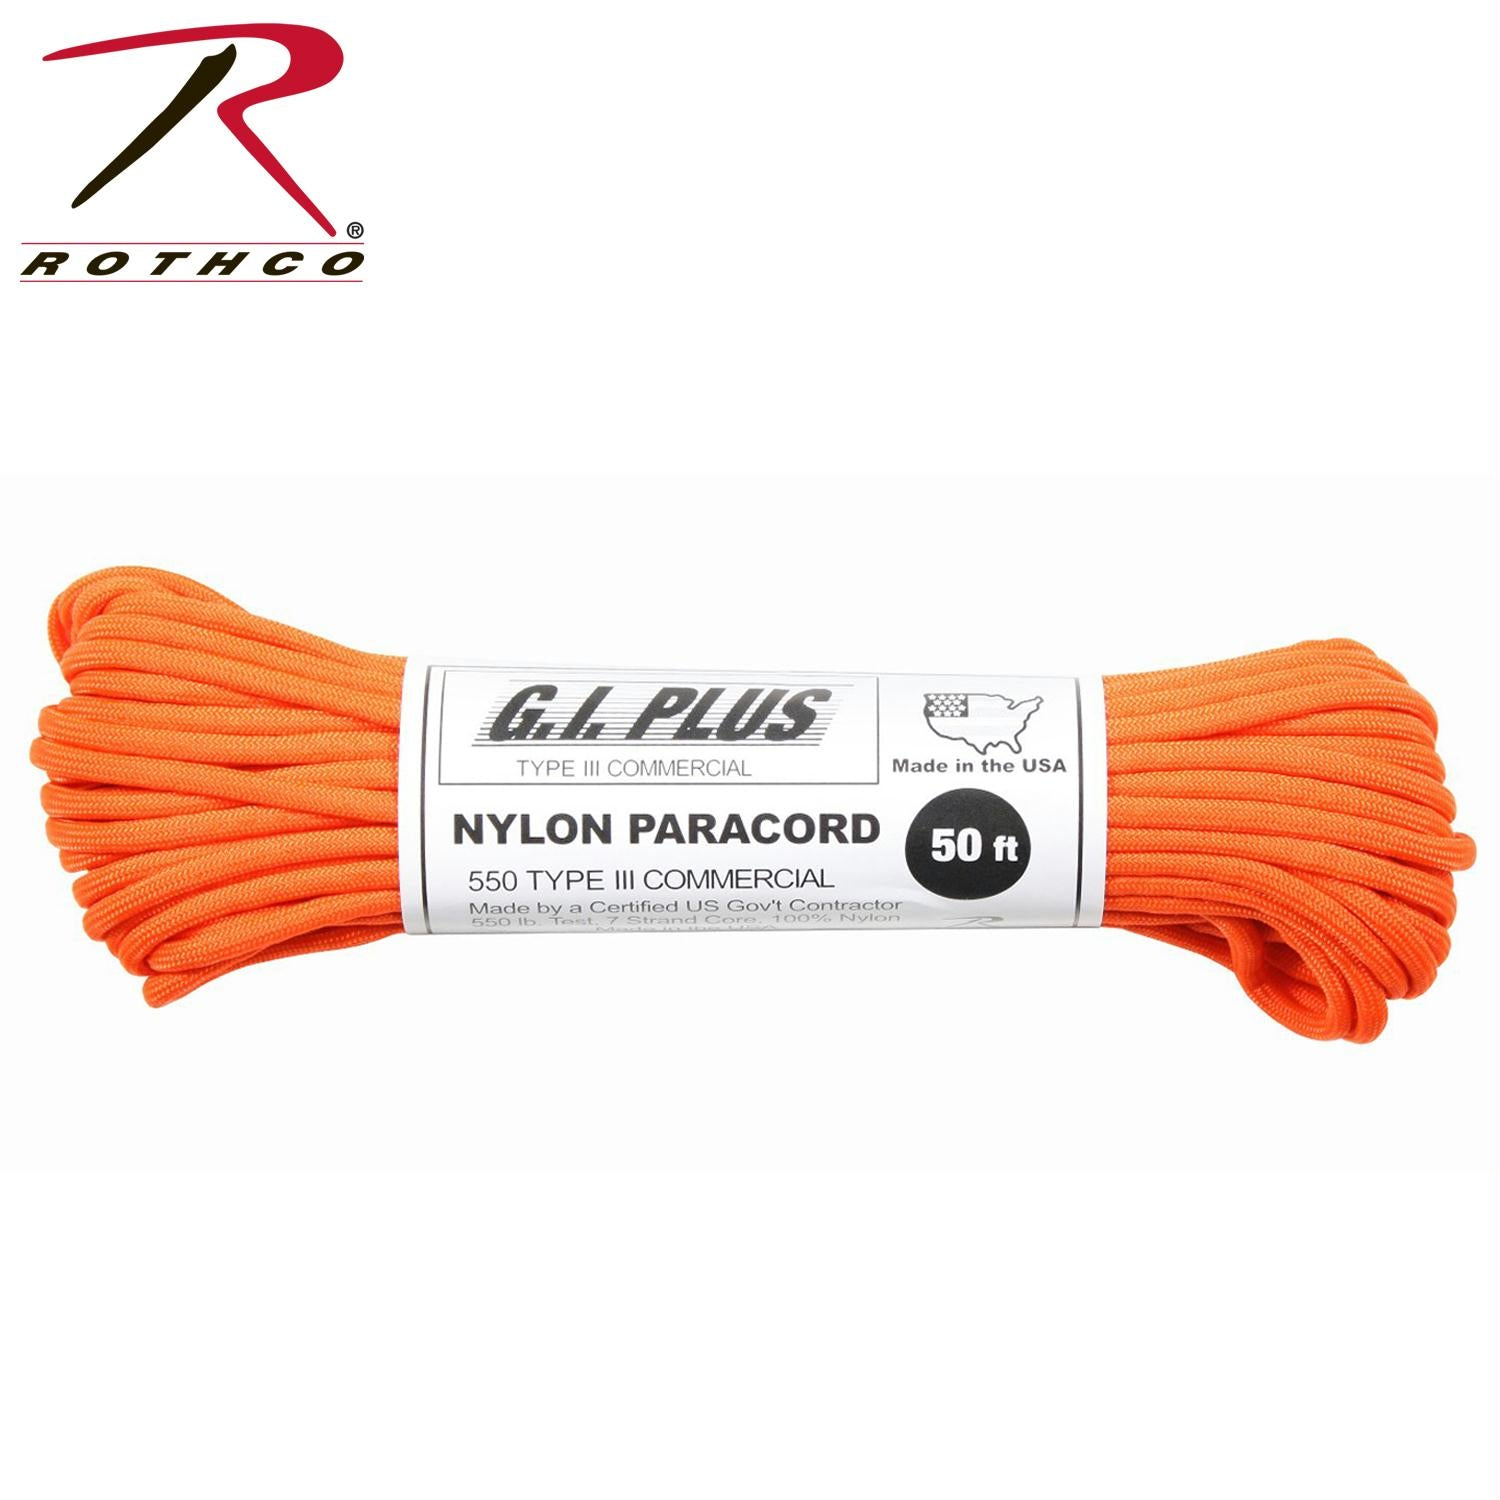 Rothco Nylon Paracord Type III 550 LB 100FT - Safety Orange